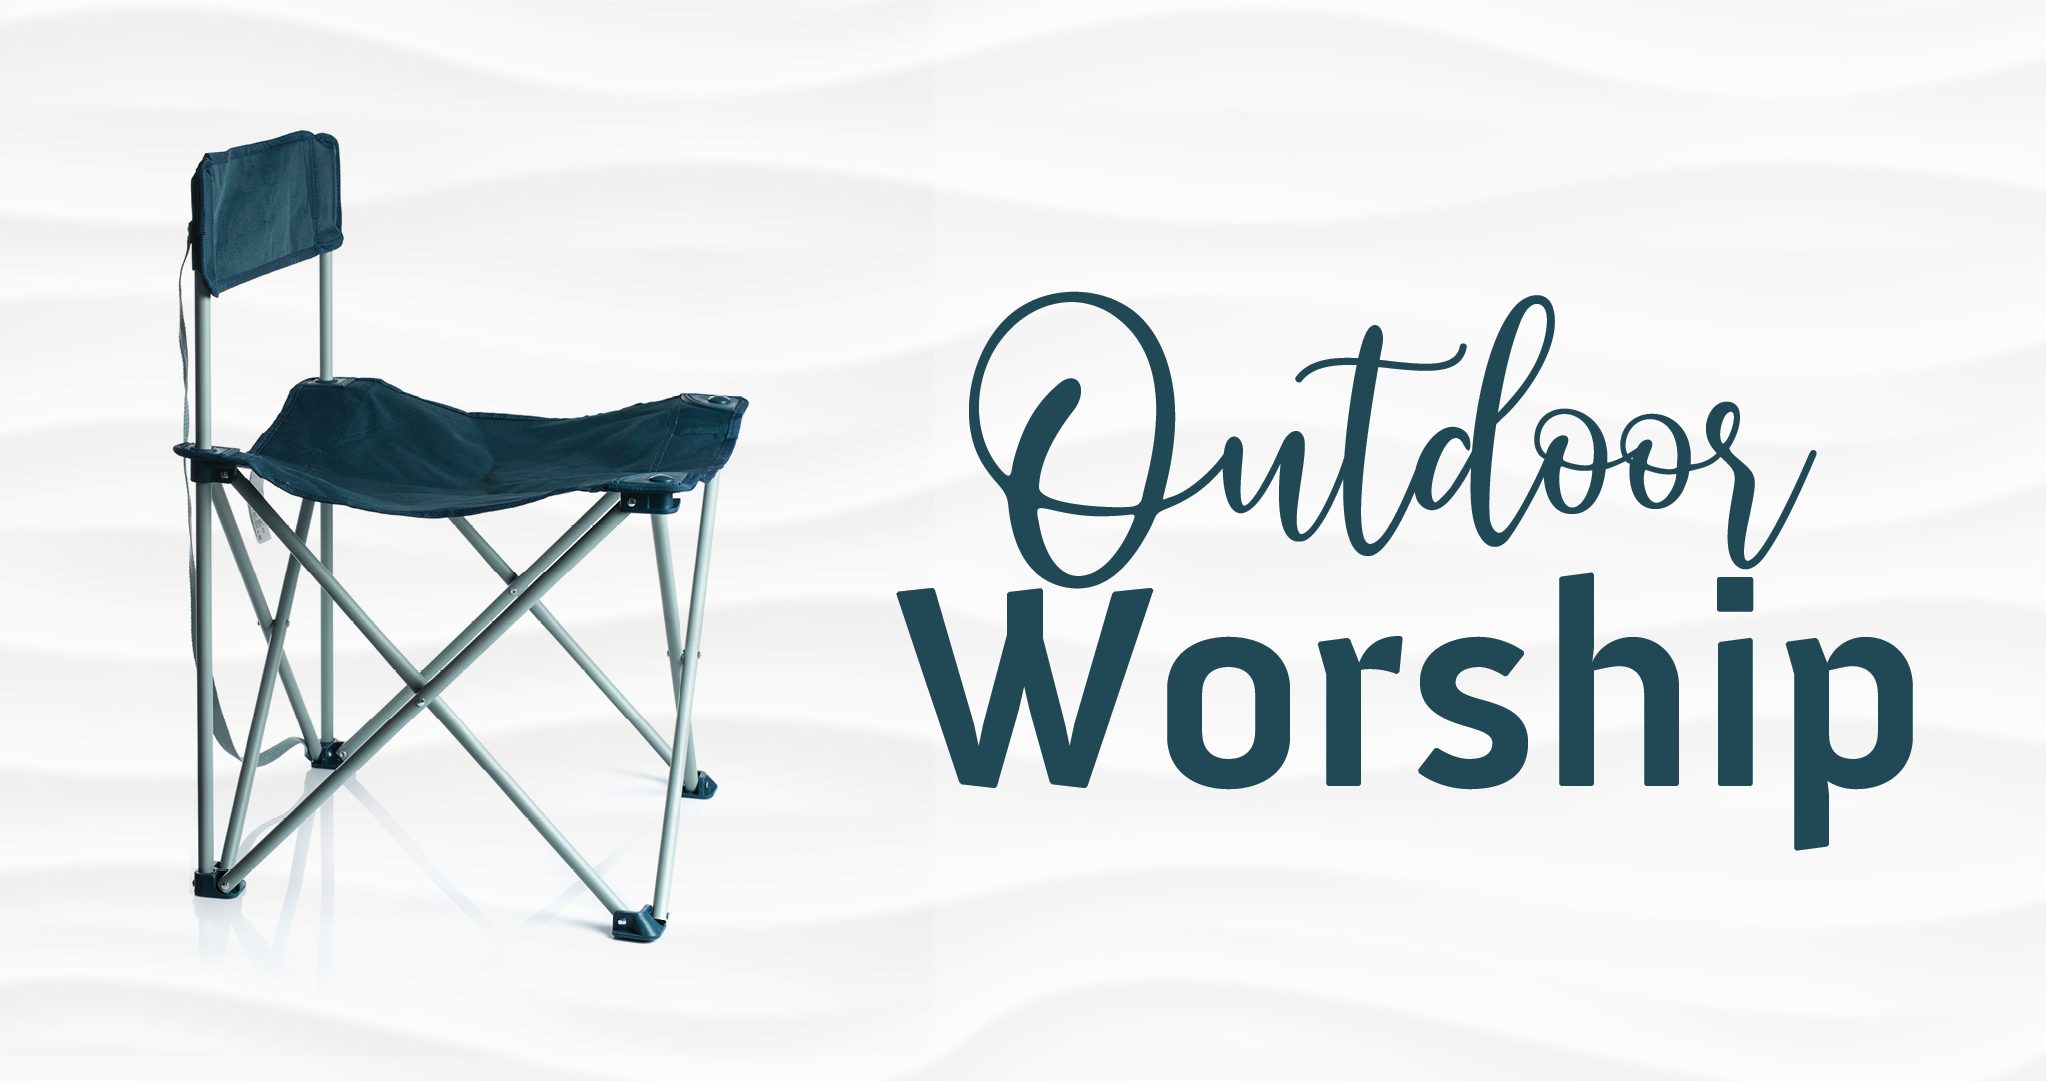 lawn chair words saying outdoor worship